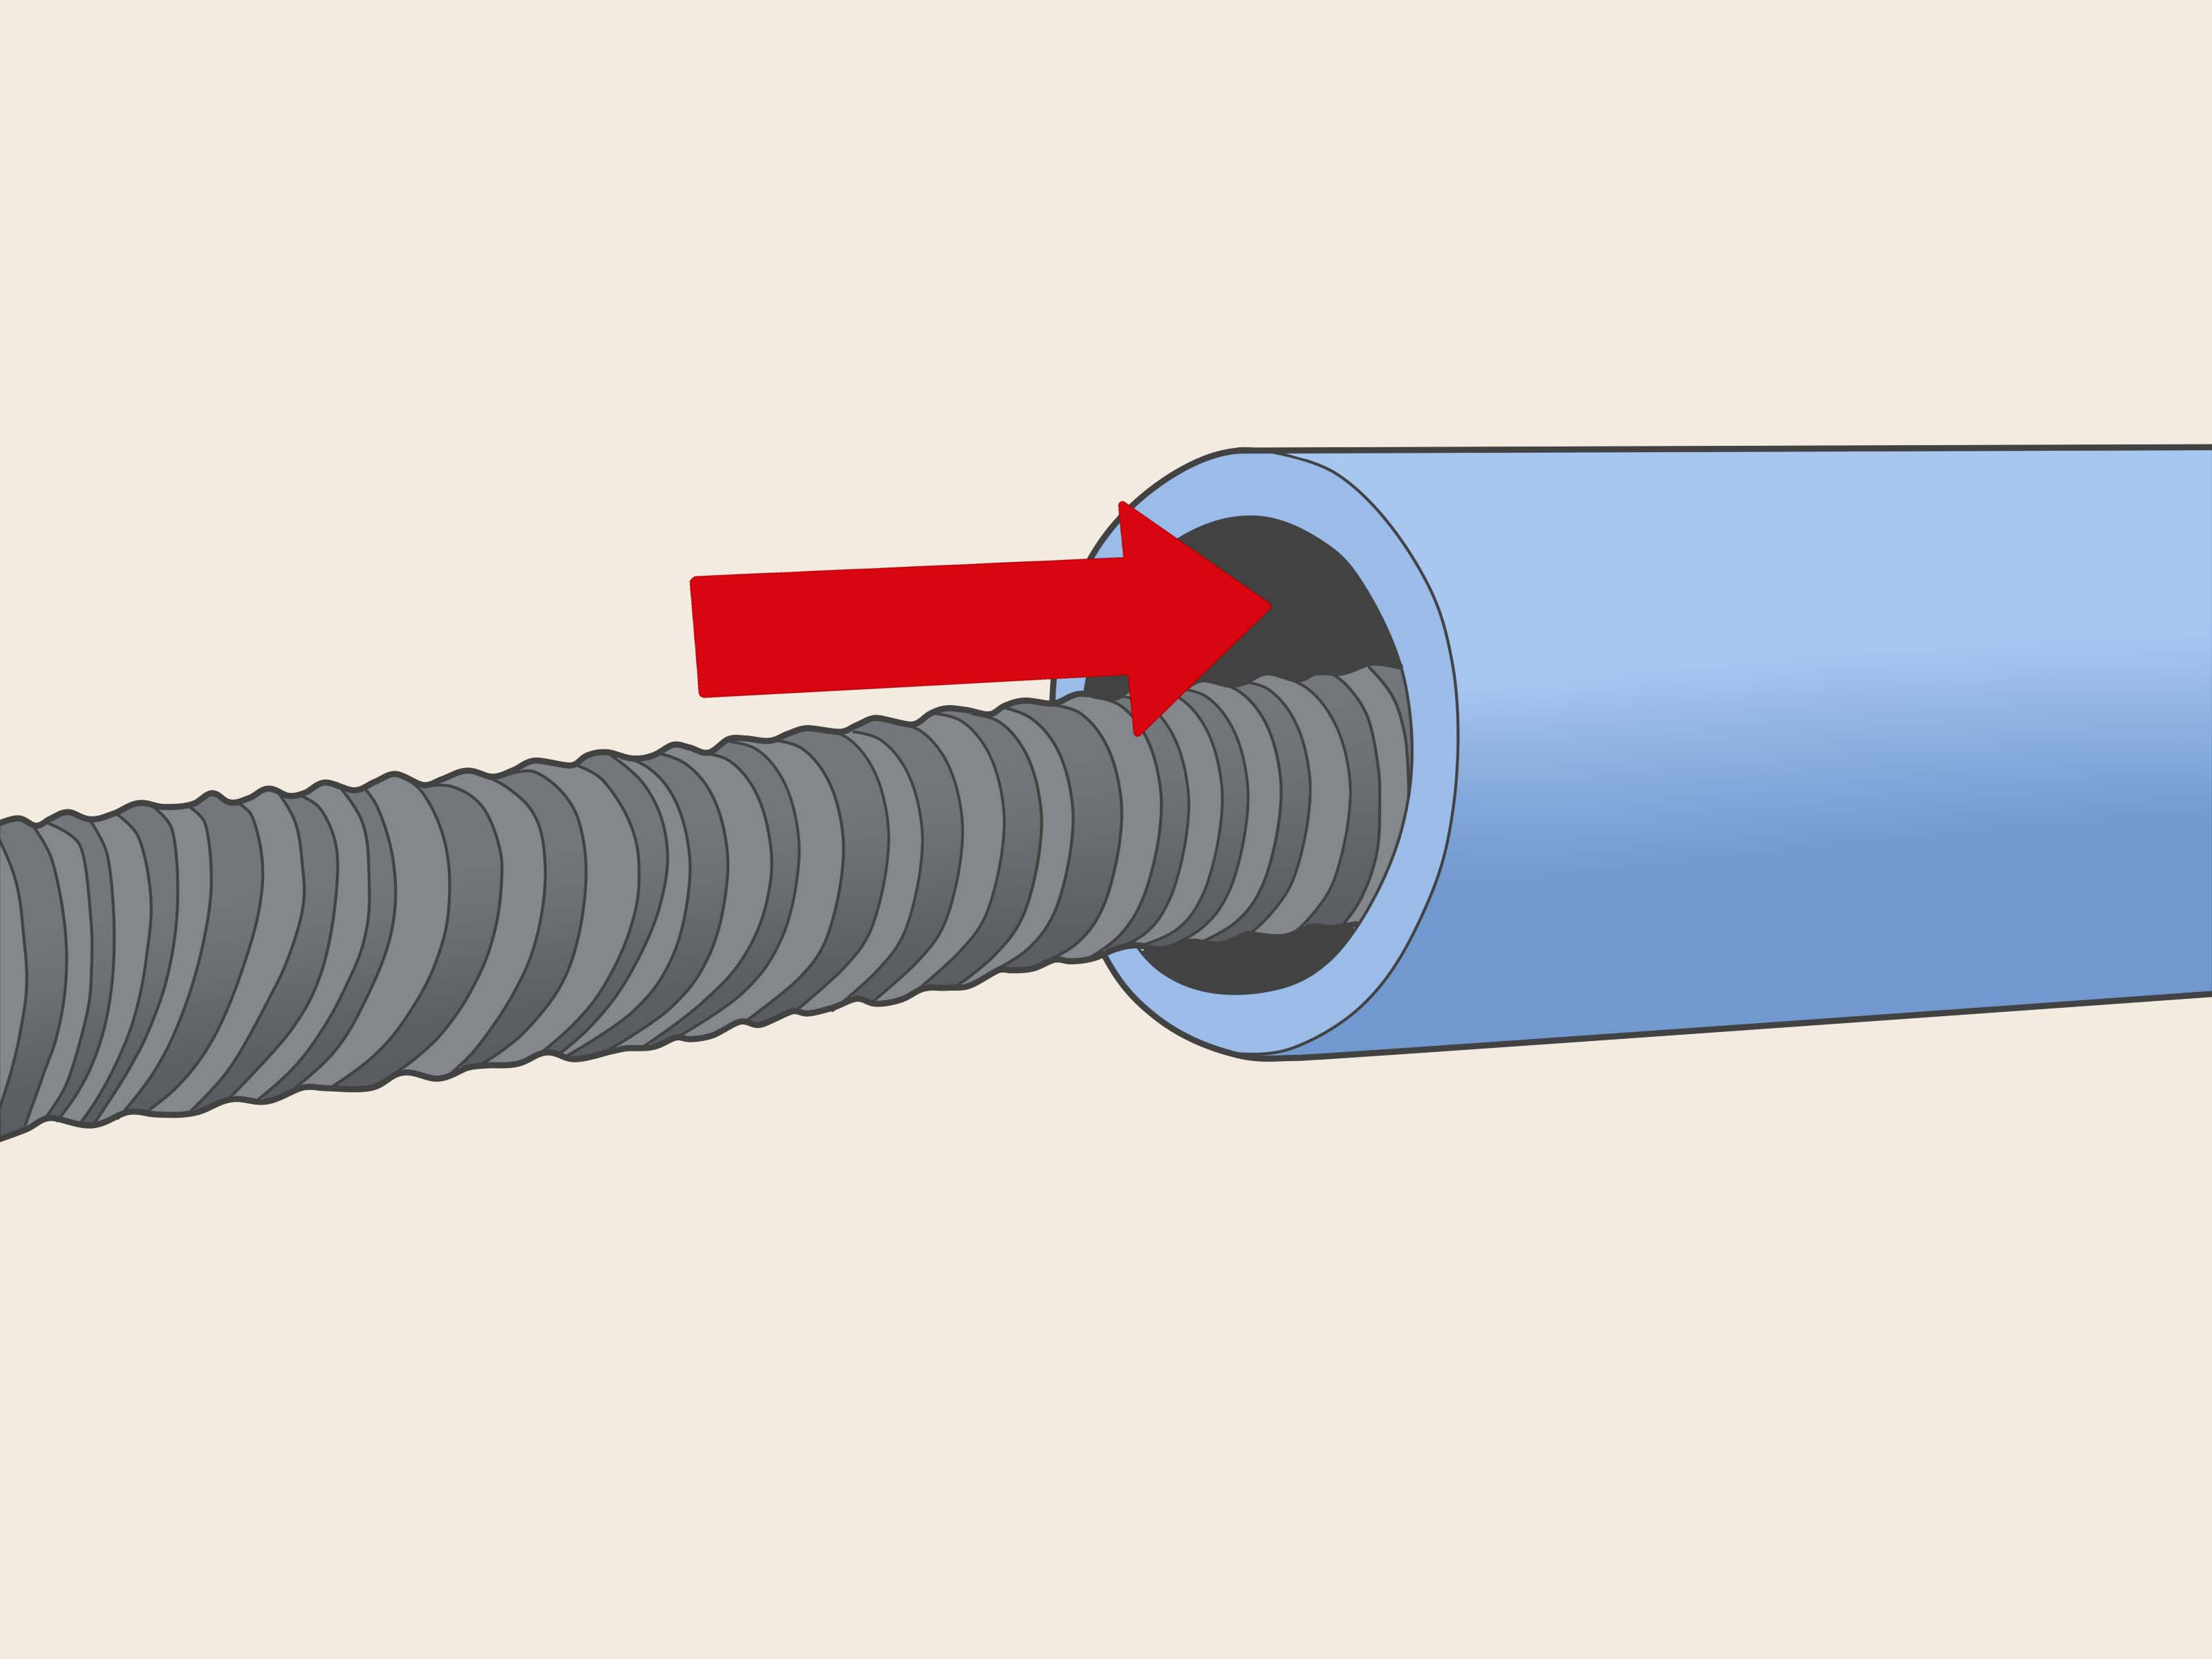 How To Bend Pvc Pipe With Hot Water